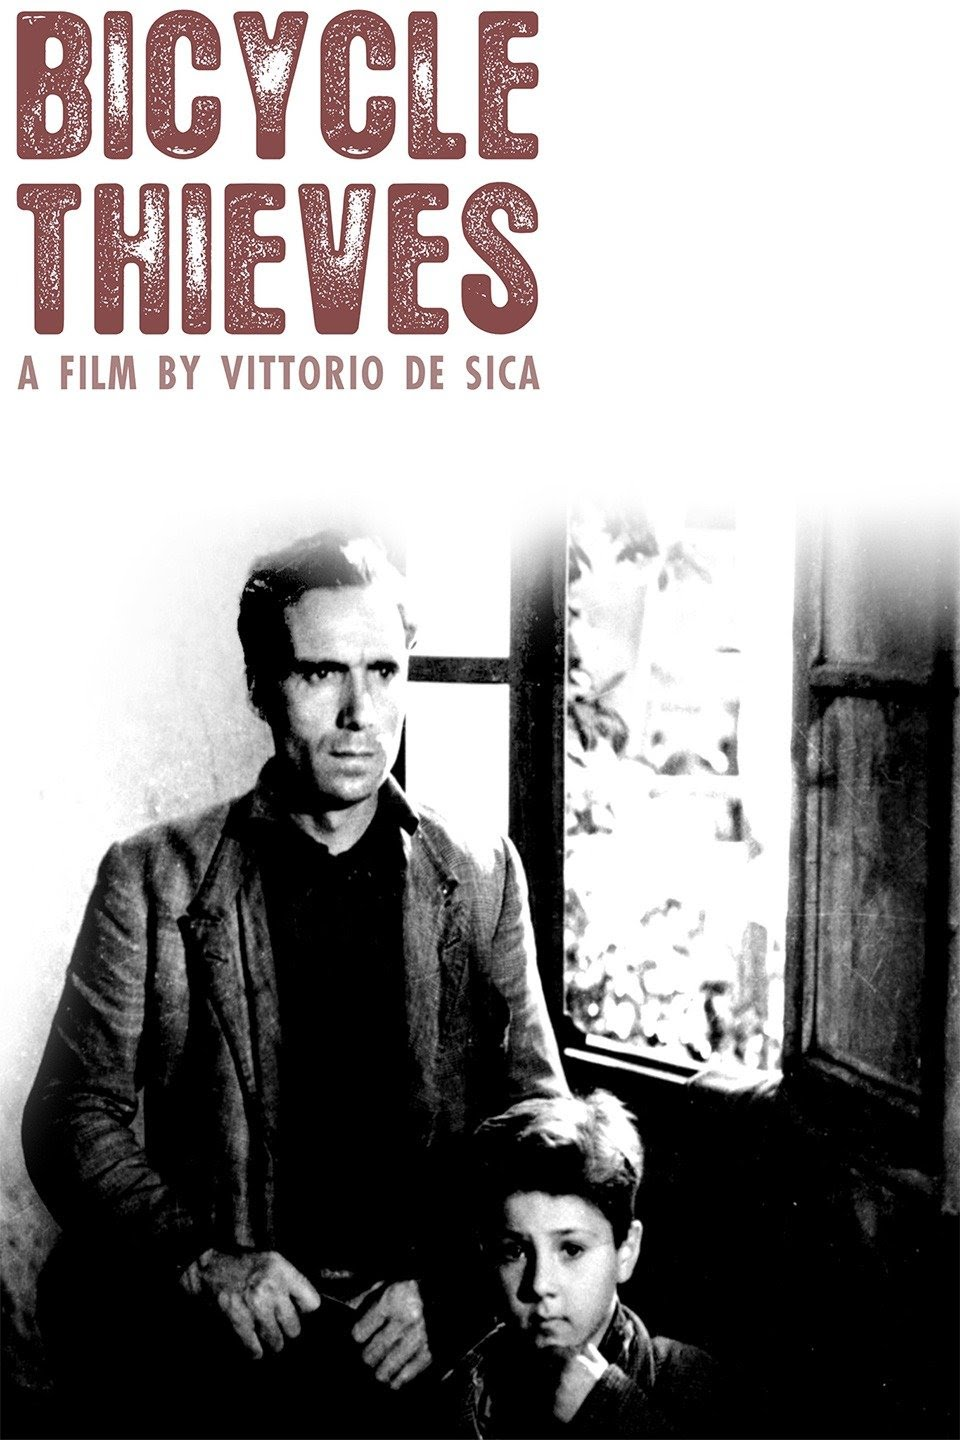 Image of the Bicycle Thieves film cover